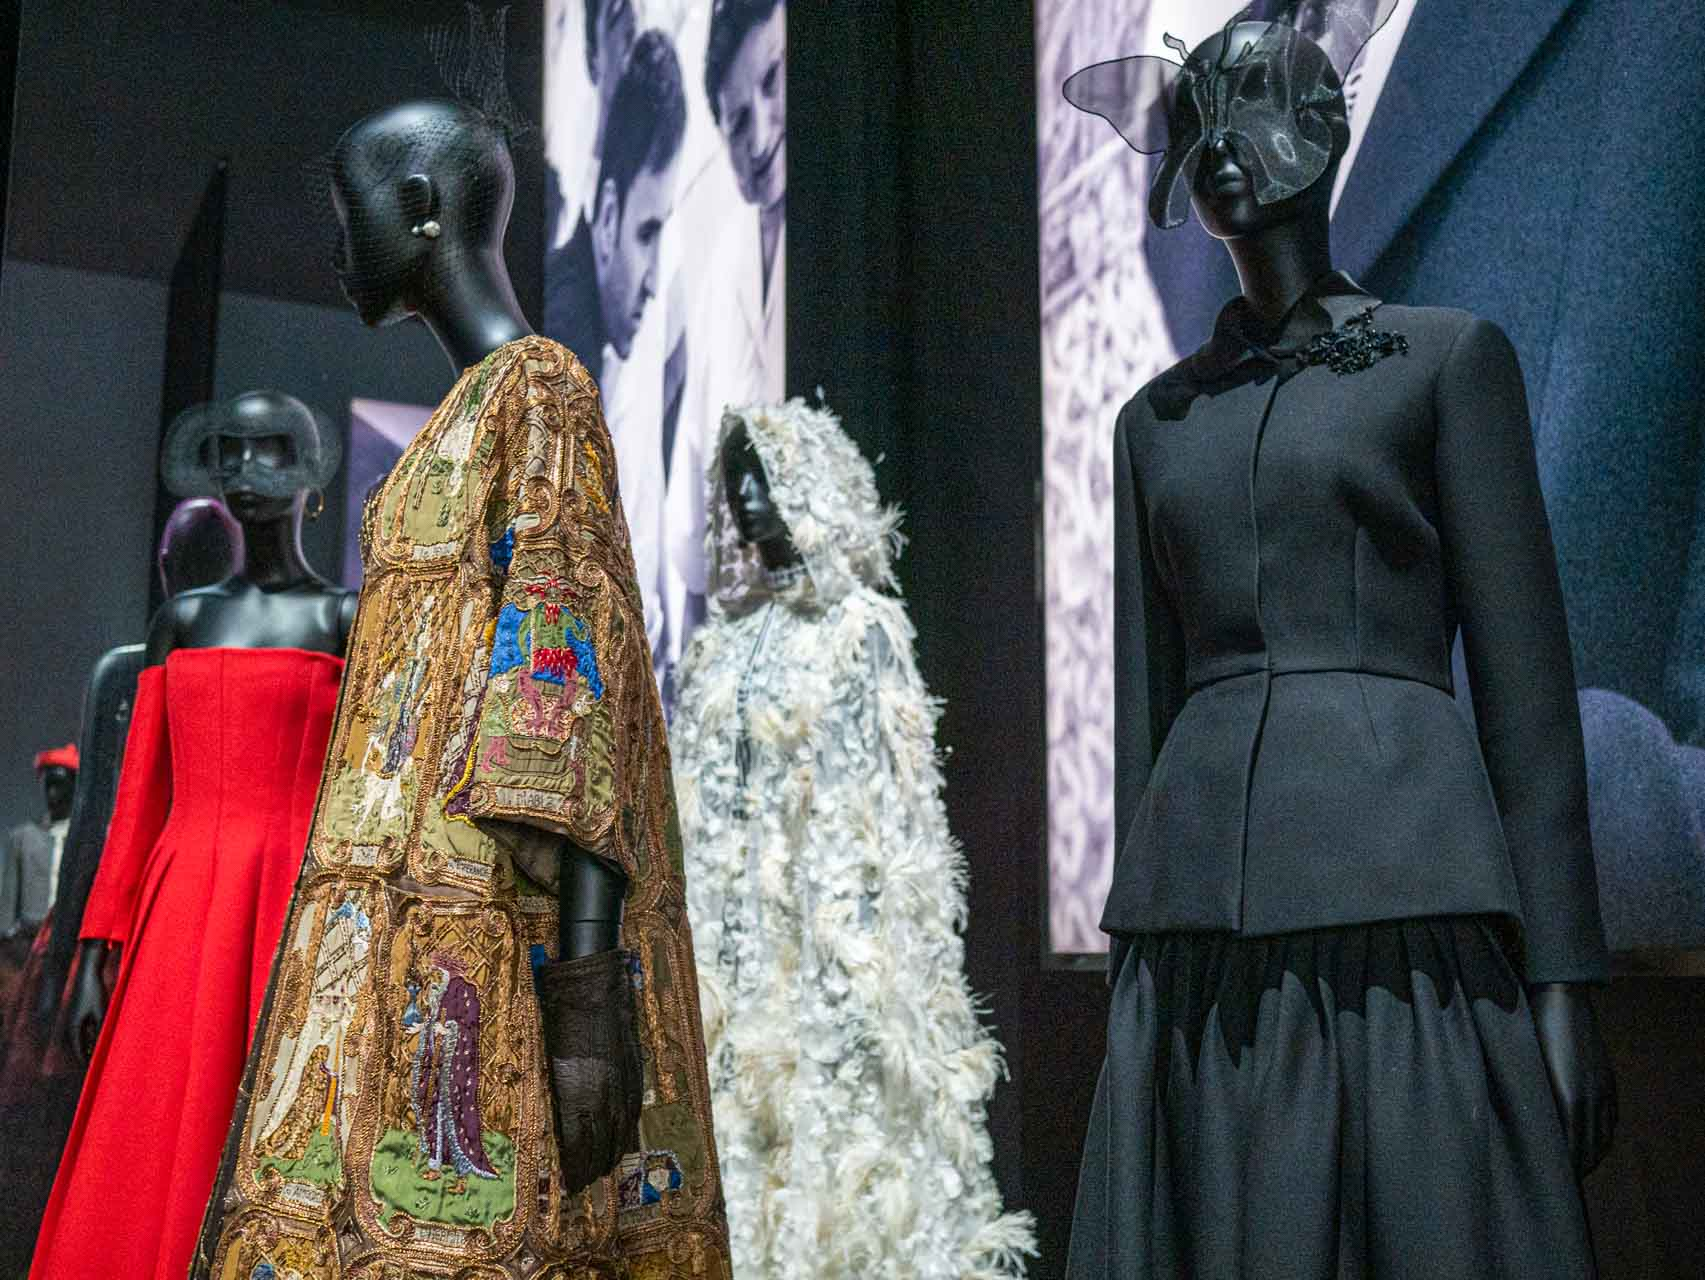 Designs by Maria Grazia Chiuri for Christian Dior. Taken at the V&A exhibition © The Cutting Class, 2019.